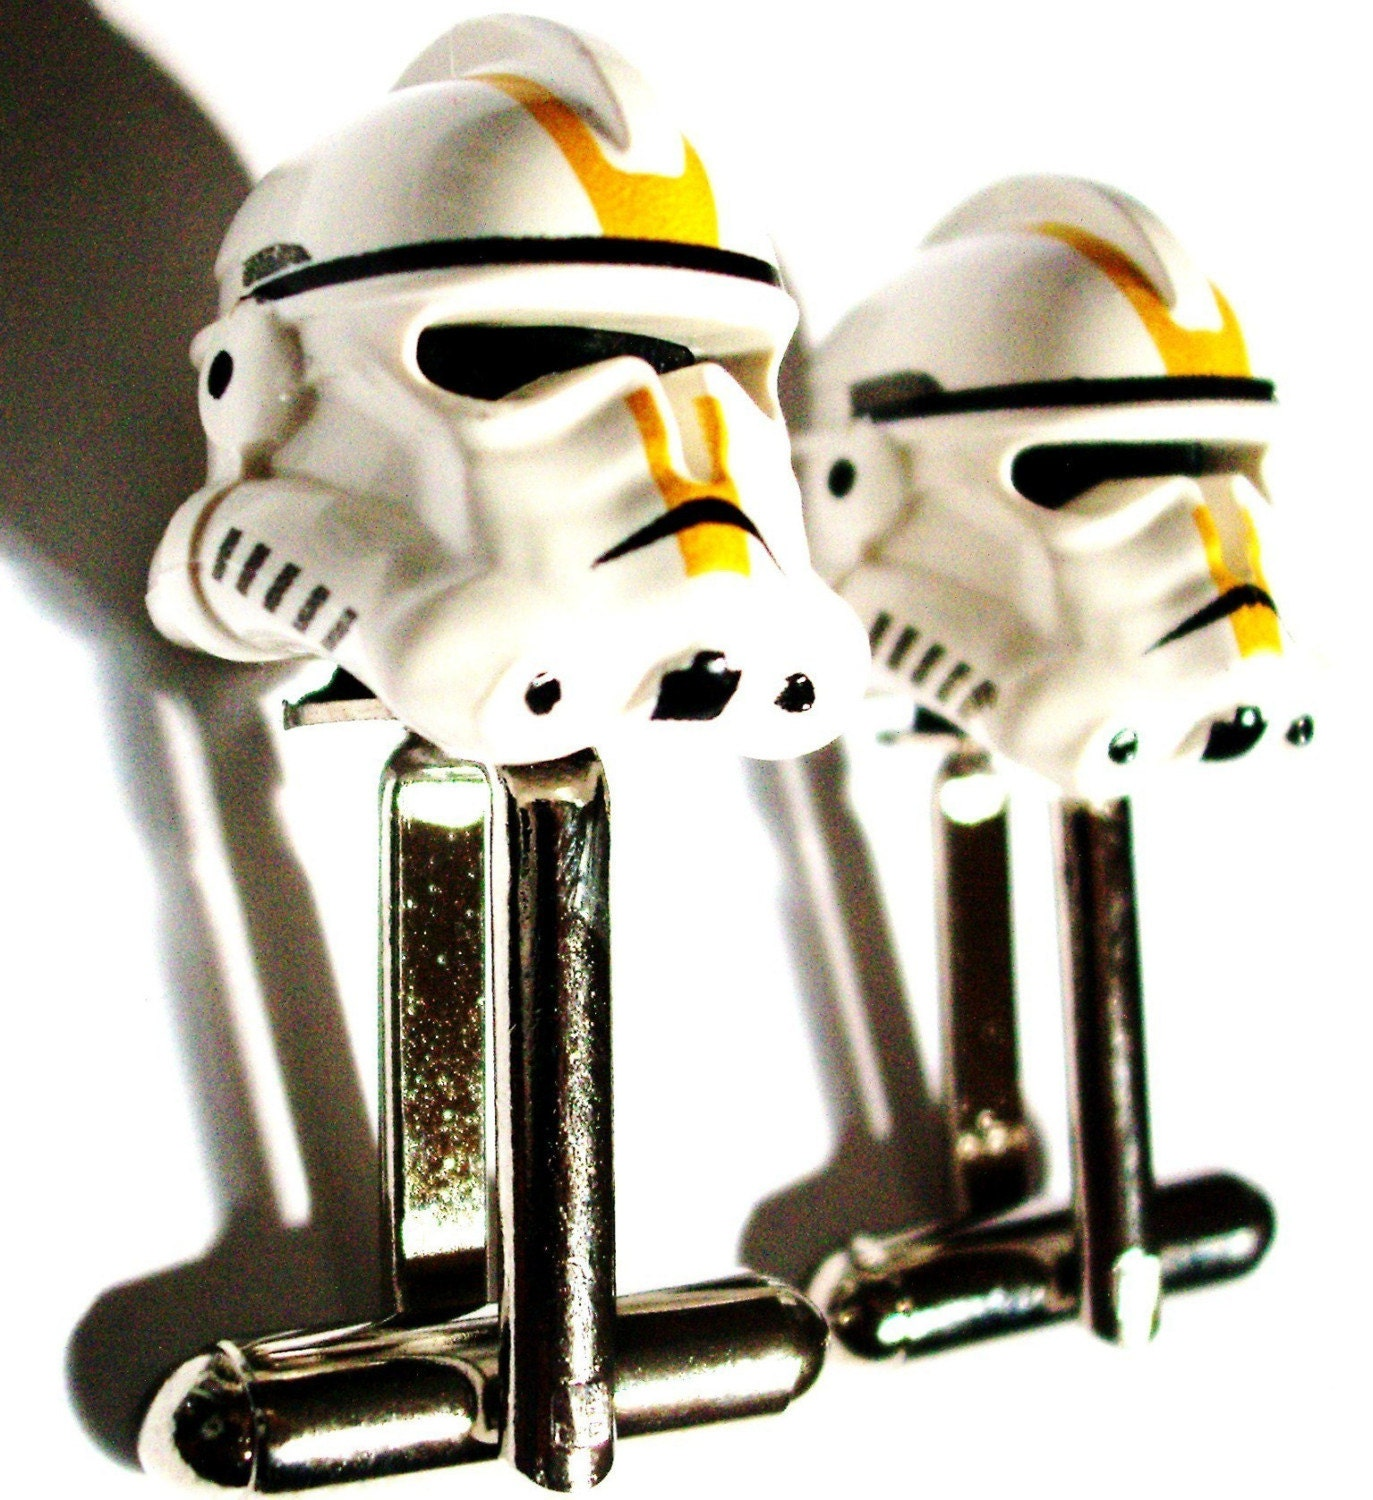 LAST PAIR- LEGO Star Wars Yellow Storm Trooper Helmet Cufflinks -FREE GIFT BAG- Retro Man Guys Dad Fun Gift 80's Dork Boy Groom Groomsmen Fathers day